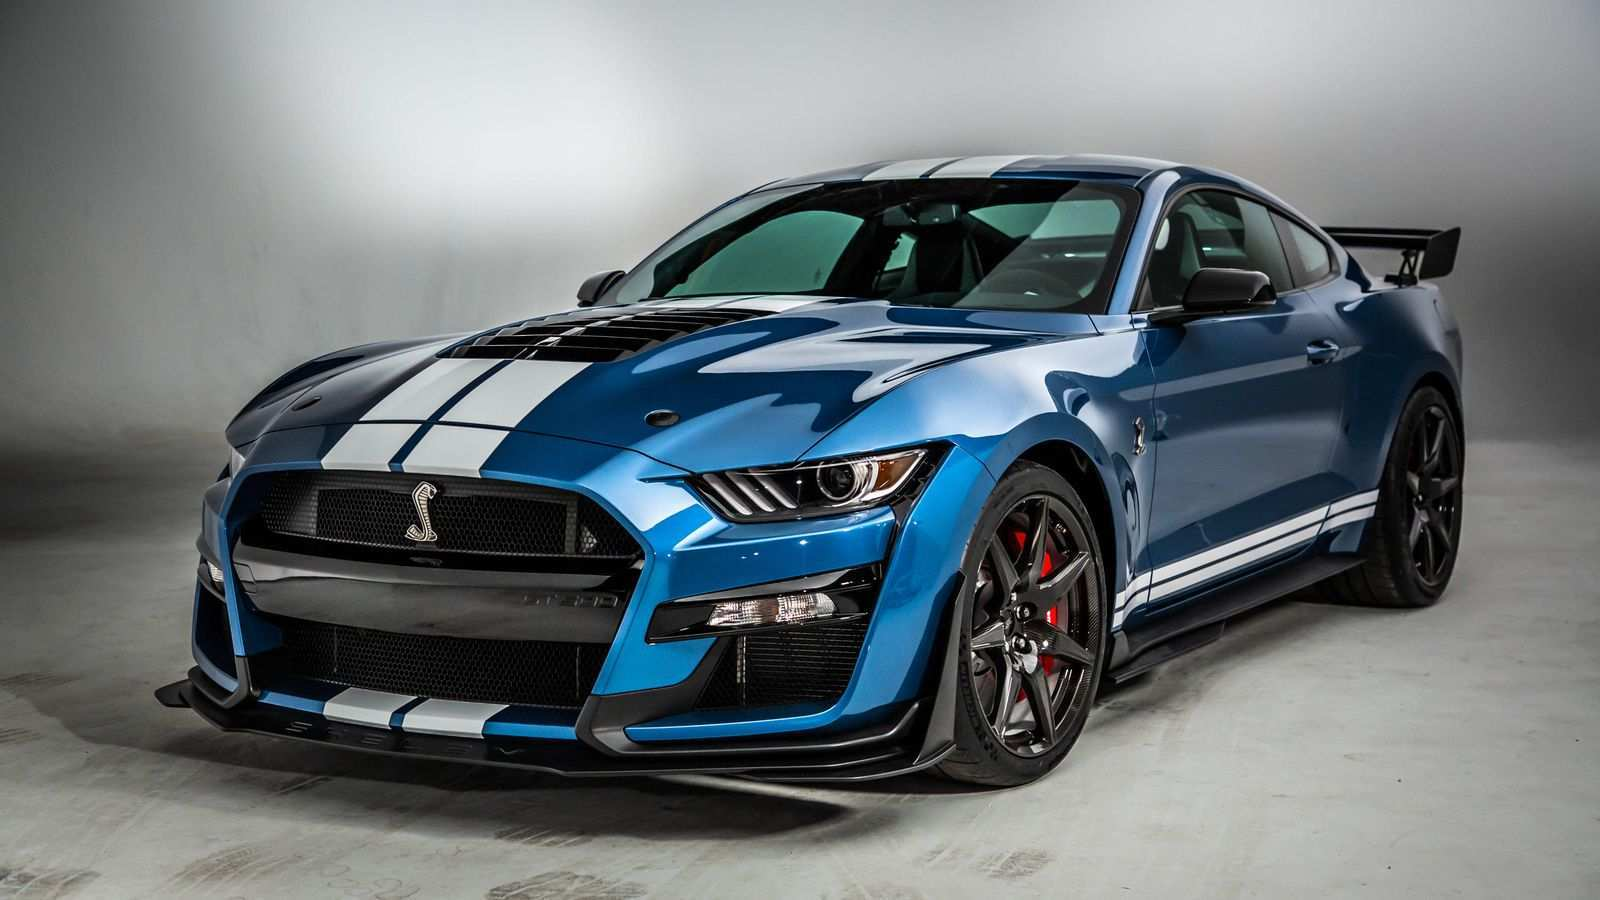 91 The 2020 Ford Mustang Gt Performance And New Engine